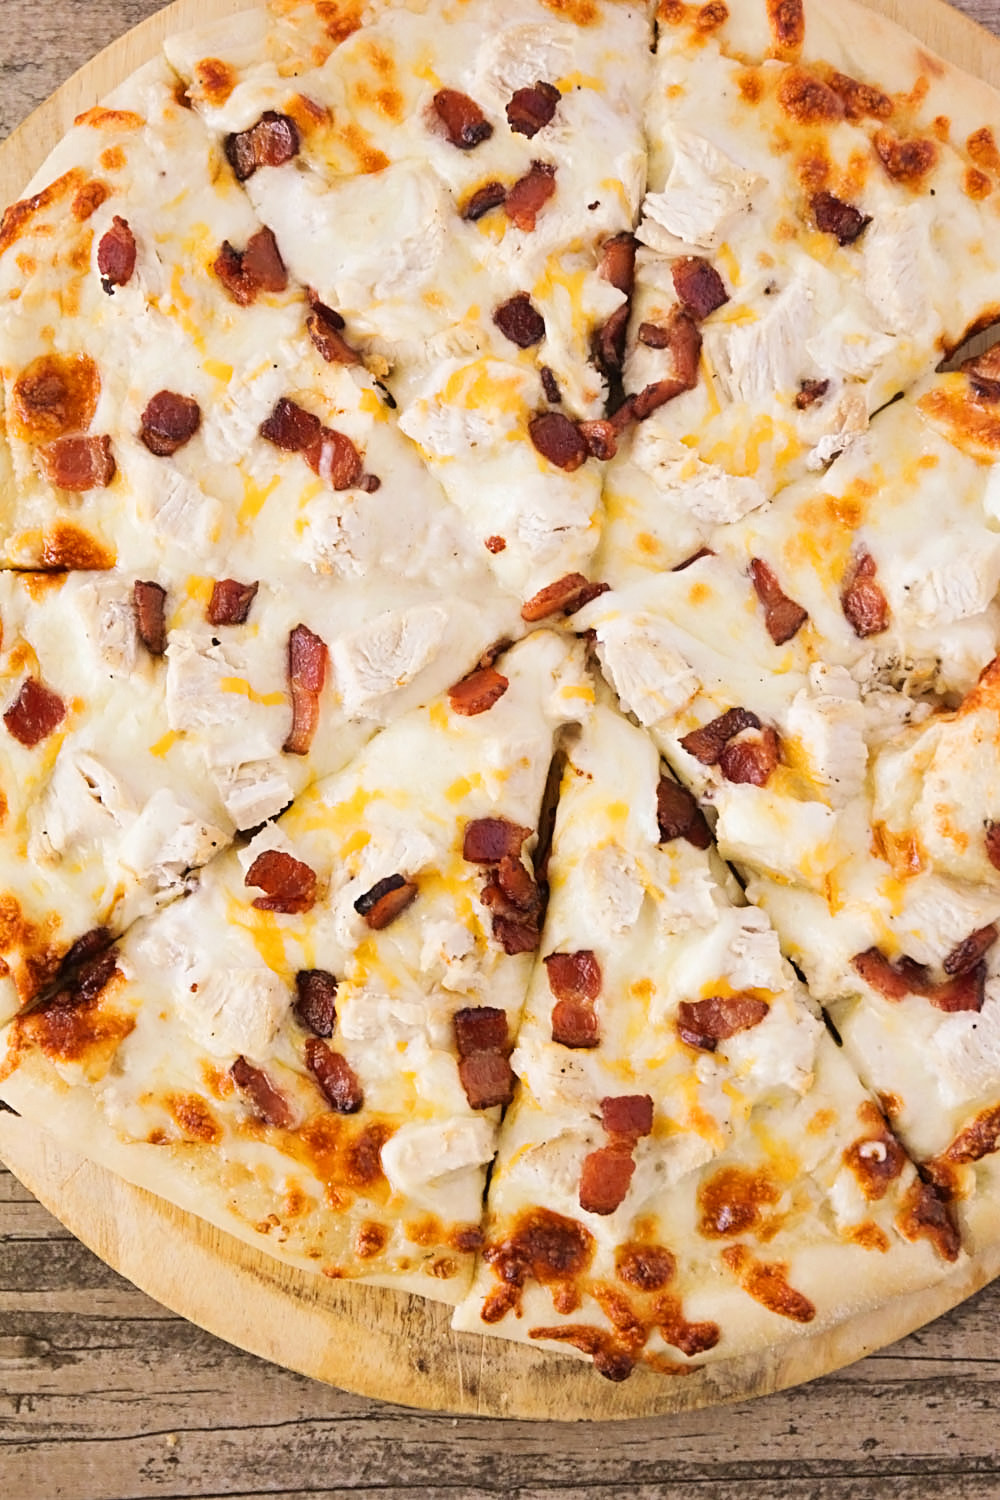 This chicken bacon ranch pizza is so cheesy and delicious, and easy to make too! Perfect for family pizza night!